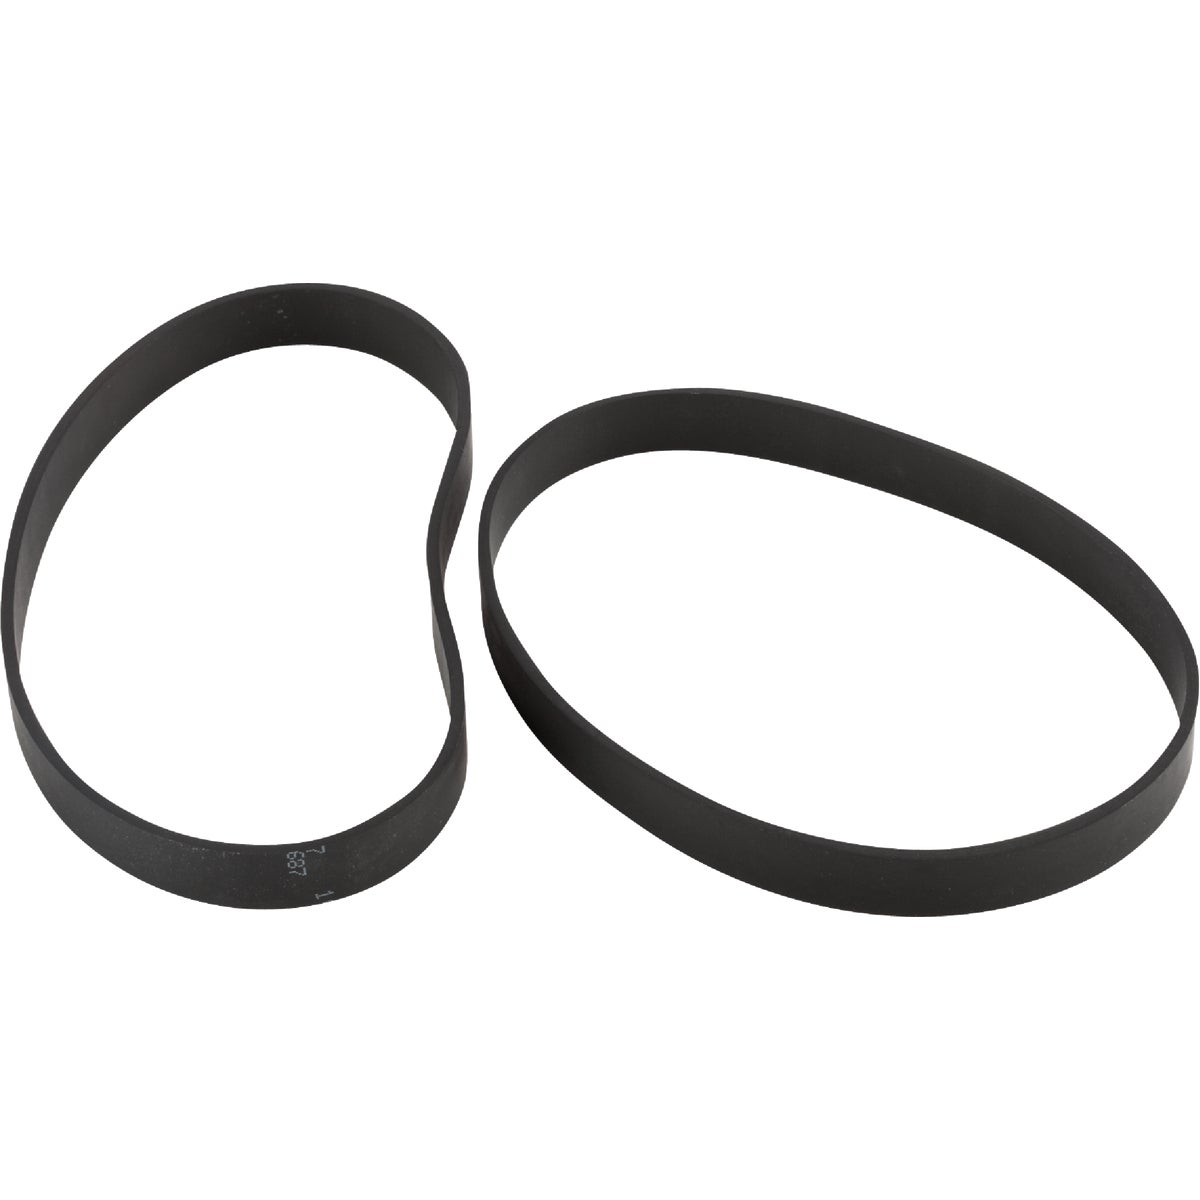 2PK VACUUM BELT - 32074 by Bissell Homecare Int